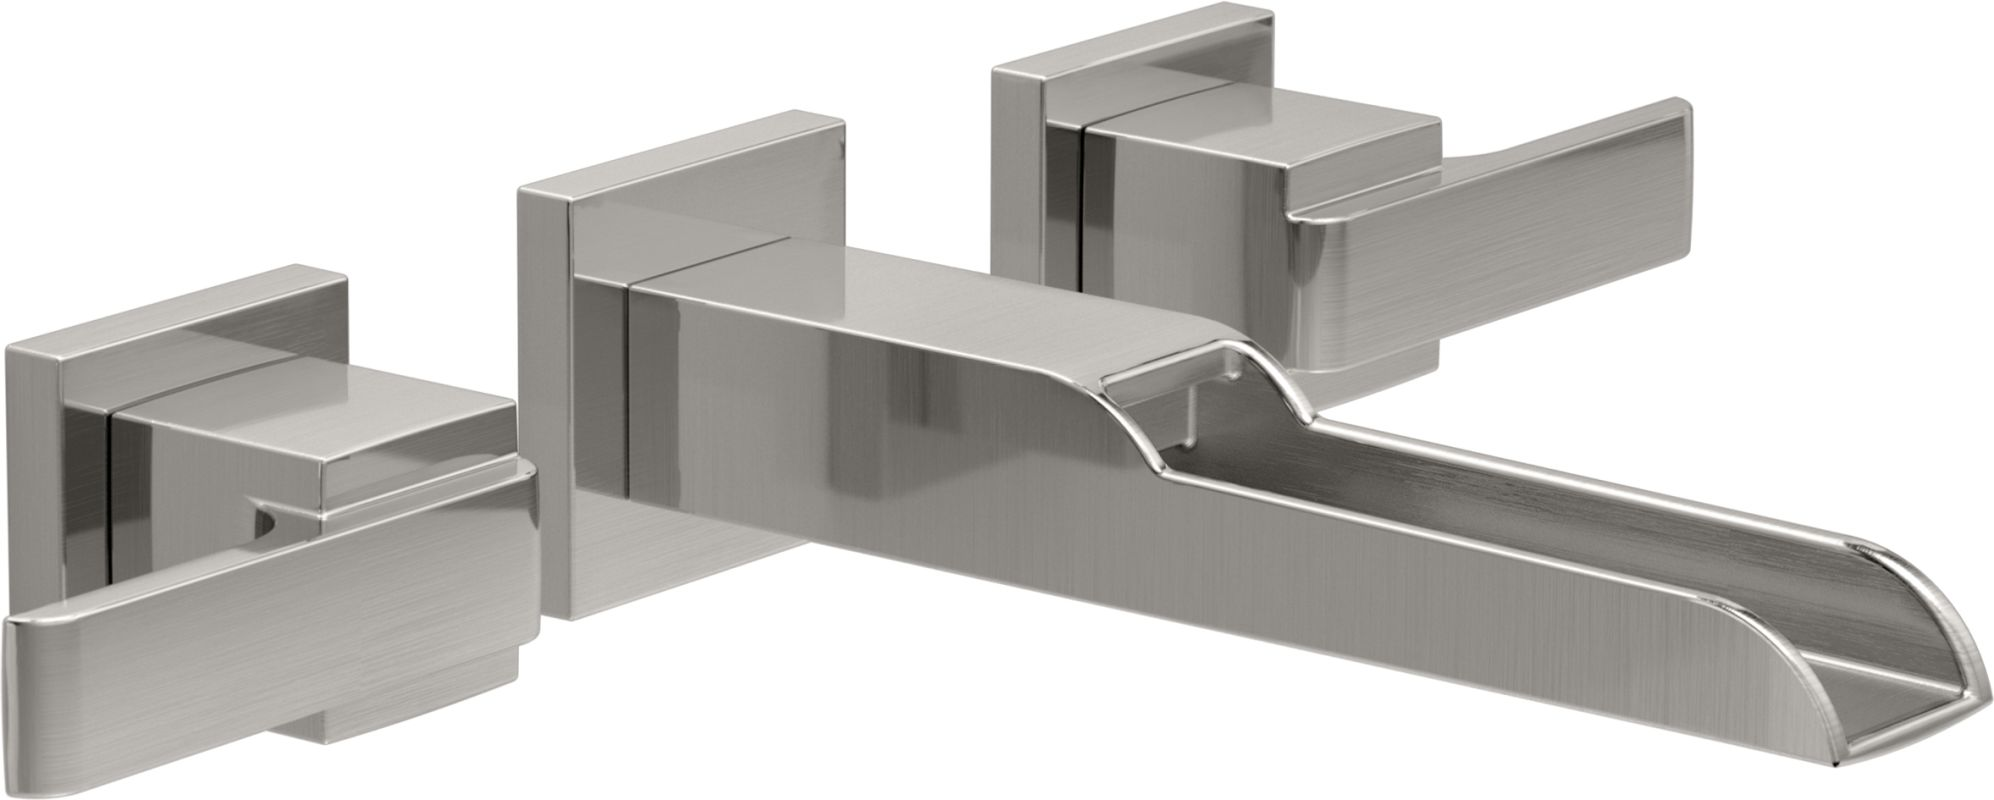 Delta T3568lf Sswl Brilliance Stainless Ara Wall Mounted